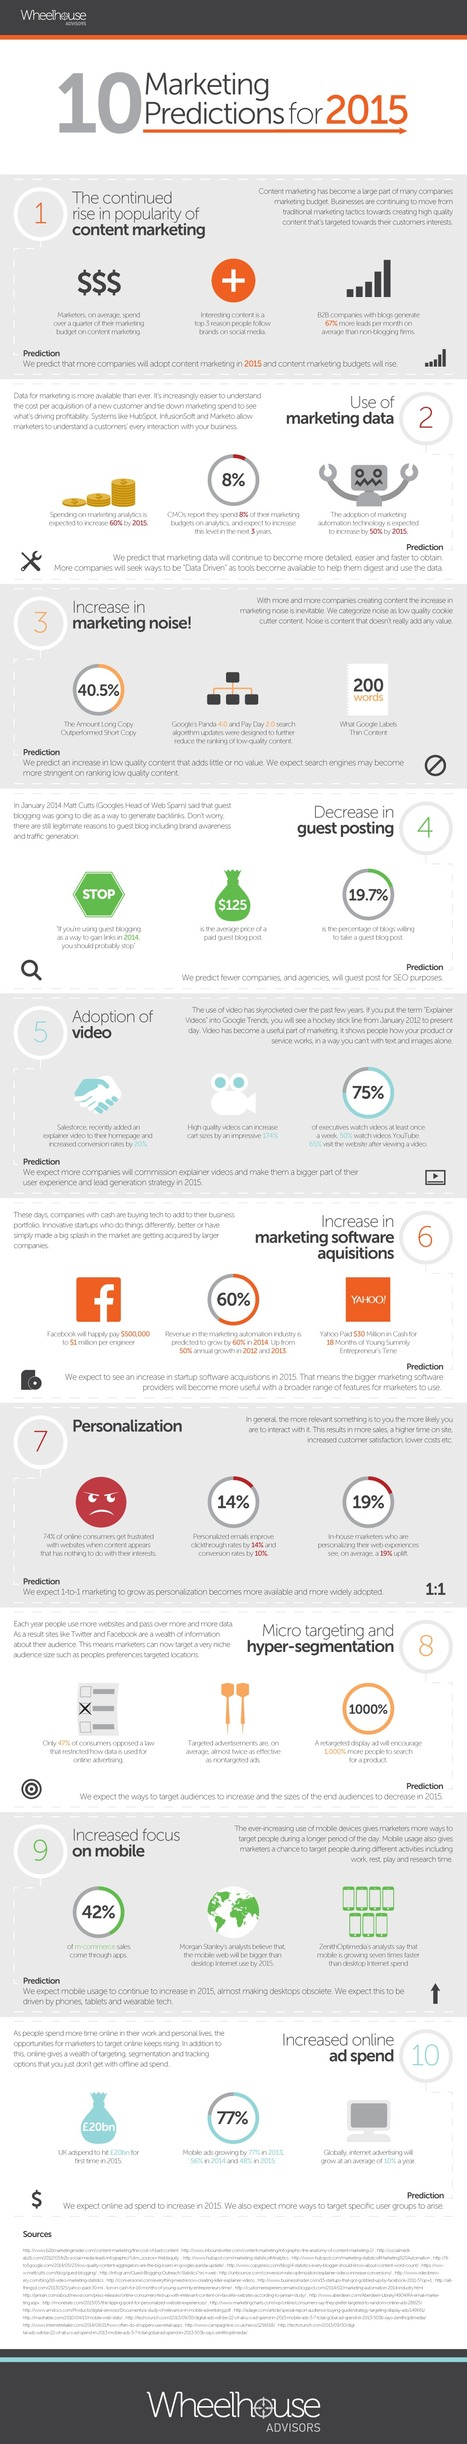 10 Marketing Predictions for 2015 #INFOGRAPHIC | MarketingHits | Scoop.it